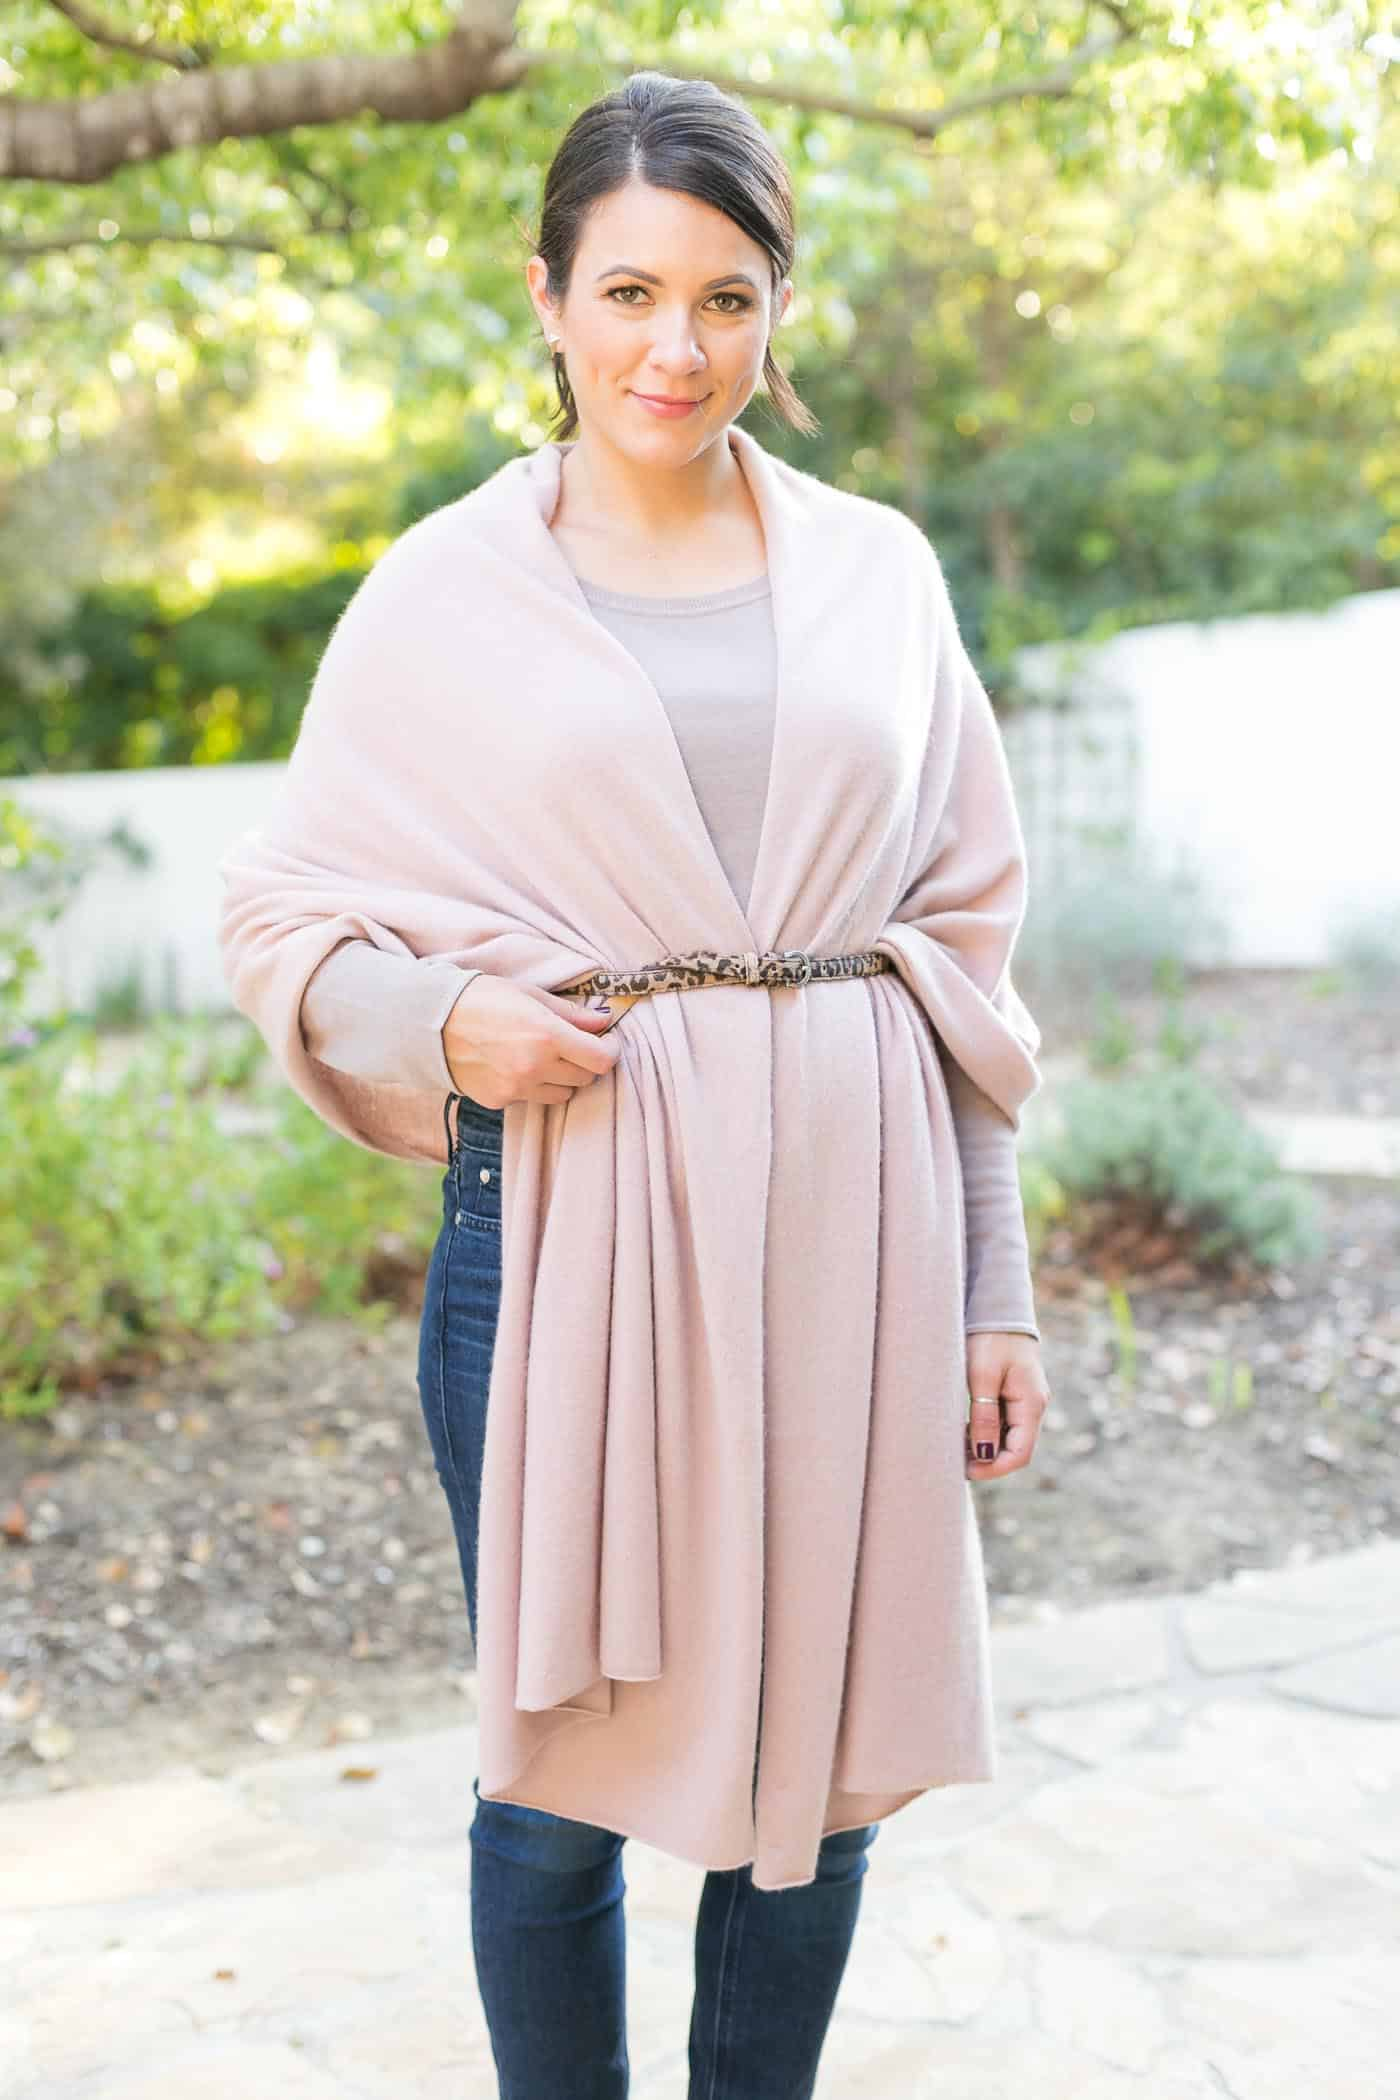 4 ways to tie a scarf, how to wear a blanket scarf, how to wear a pashmina wrap - My Style Vita @mystylevita